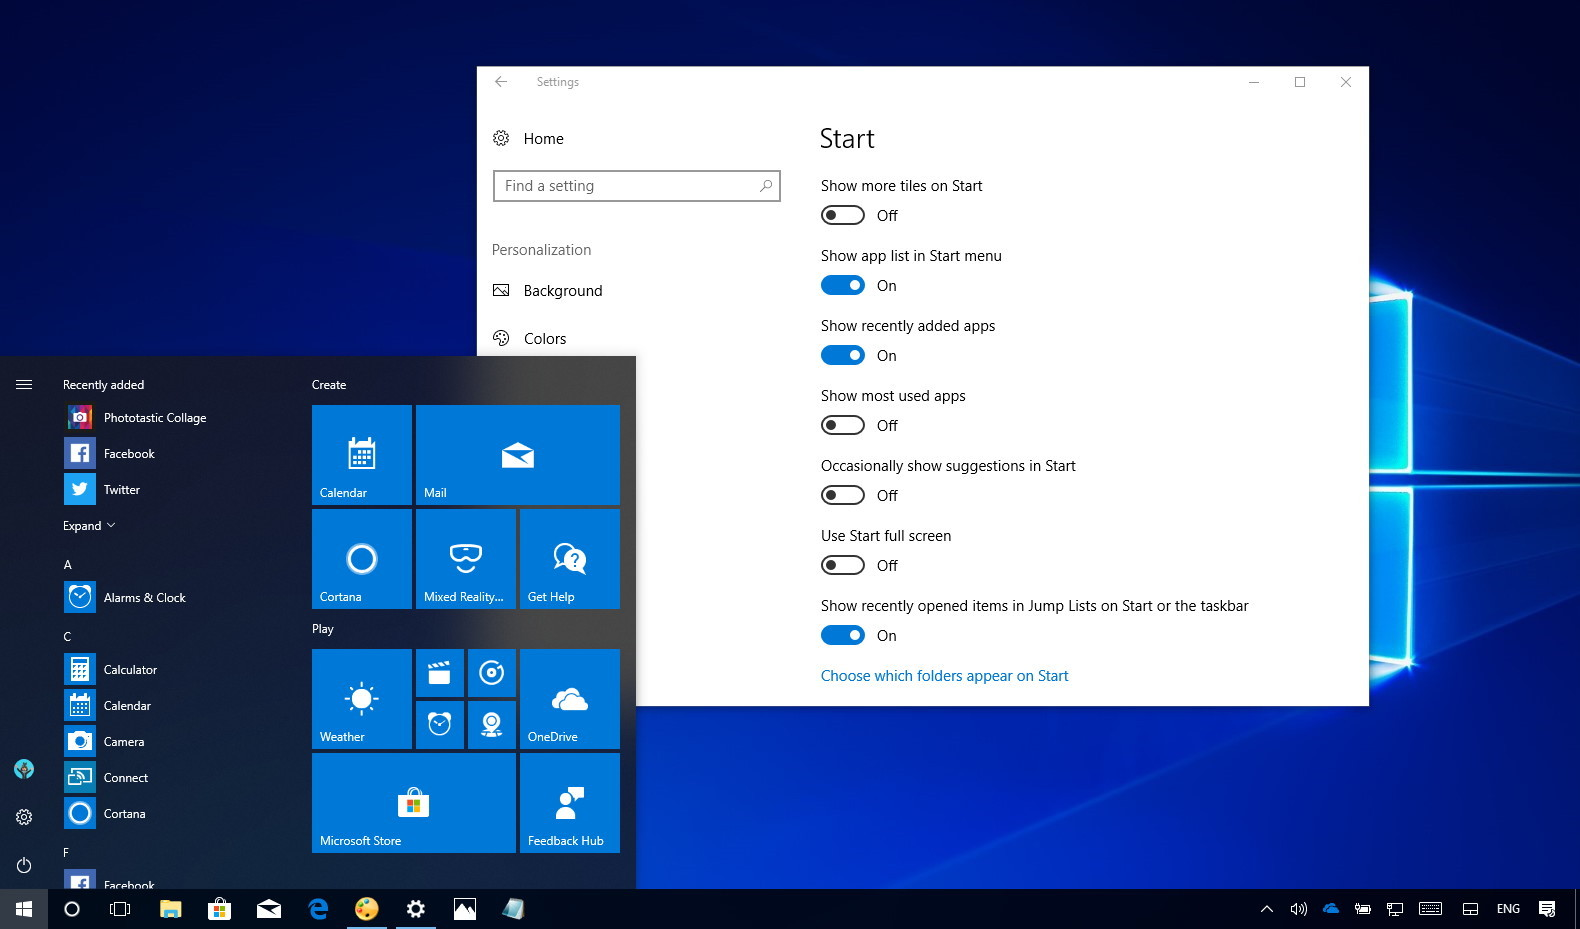 How to disable app suggestions in the Start menu on Windows 10